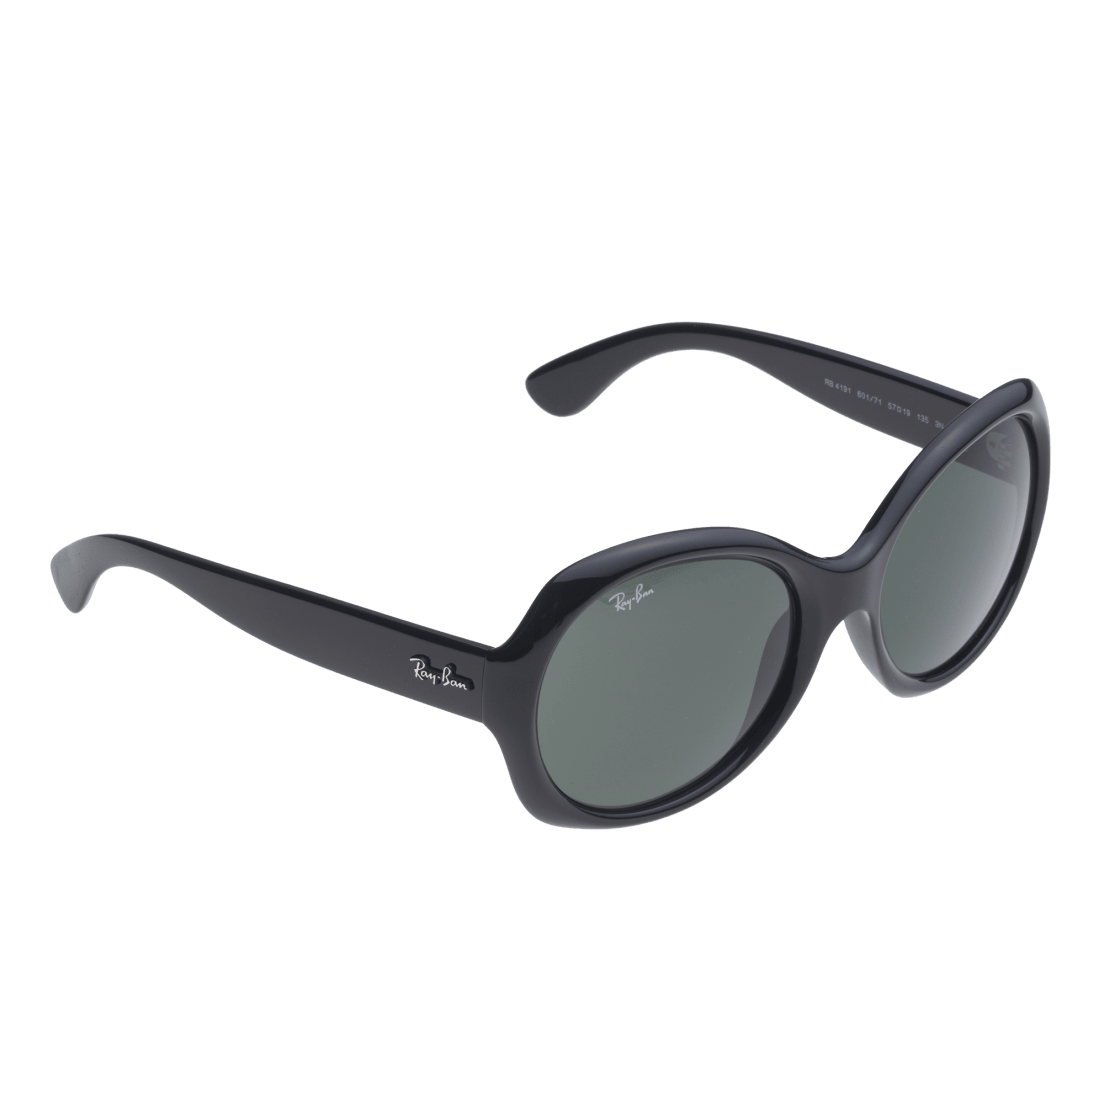 c80a5ced9e090 ... Ray-Ban RB4191 Sunglasses with Black Frame   Green Classic Lenses. Buy  It  69  143 save 52%